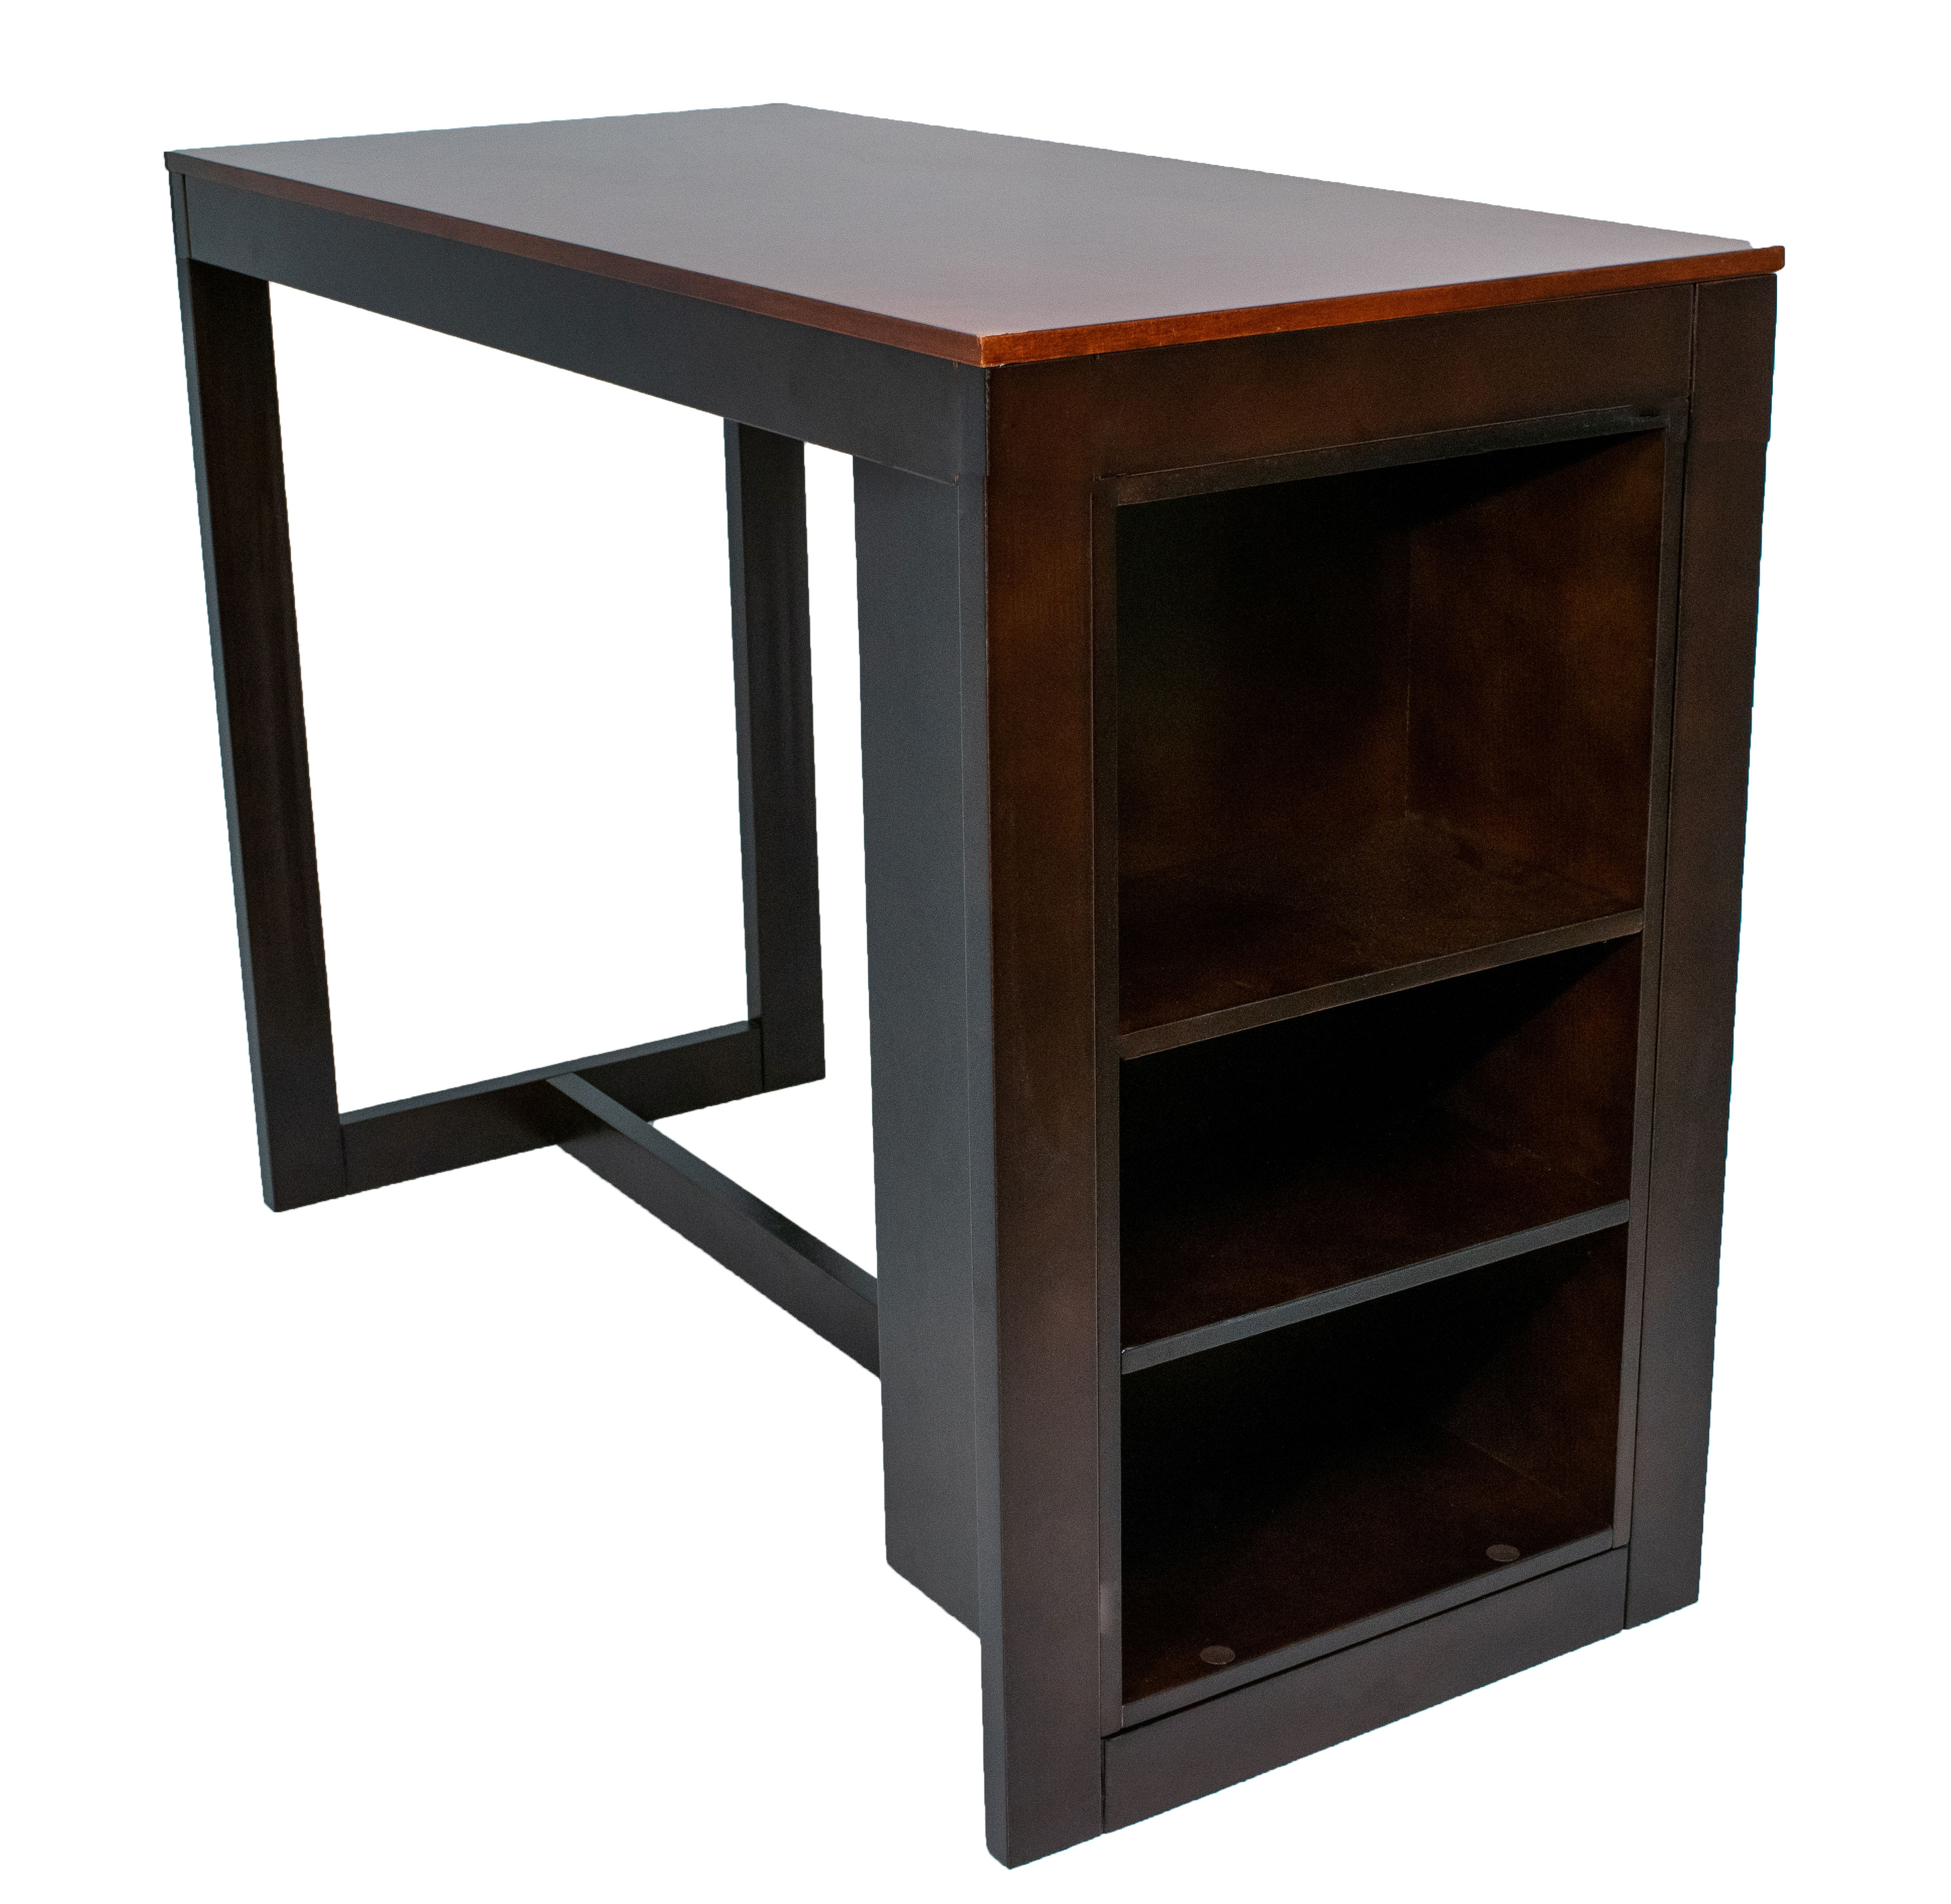 Brilliant Zebra Products Willoughby Cherry Merlot Counter Height Dining Table With Shelving Download Free Architecture Designs Salvmadebymaigaardcom